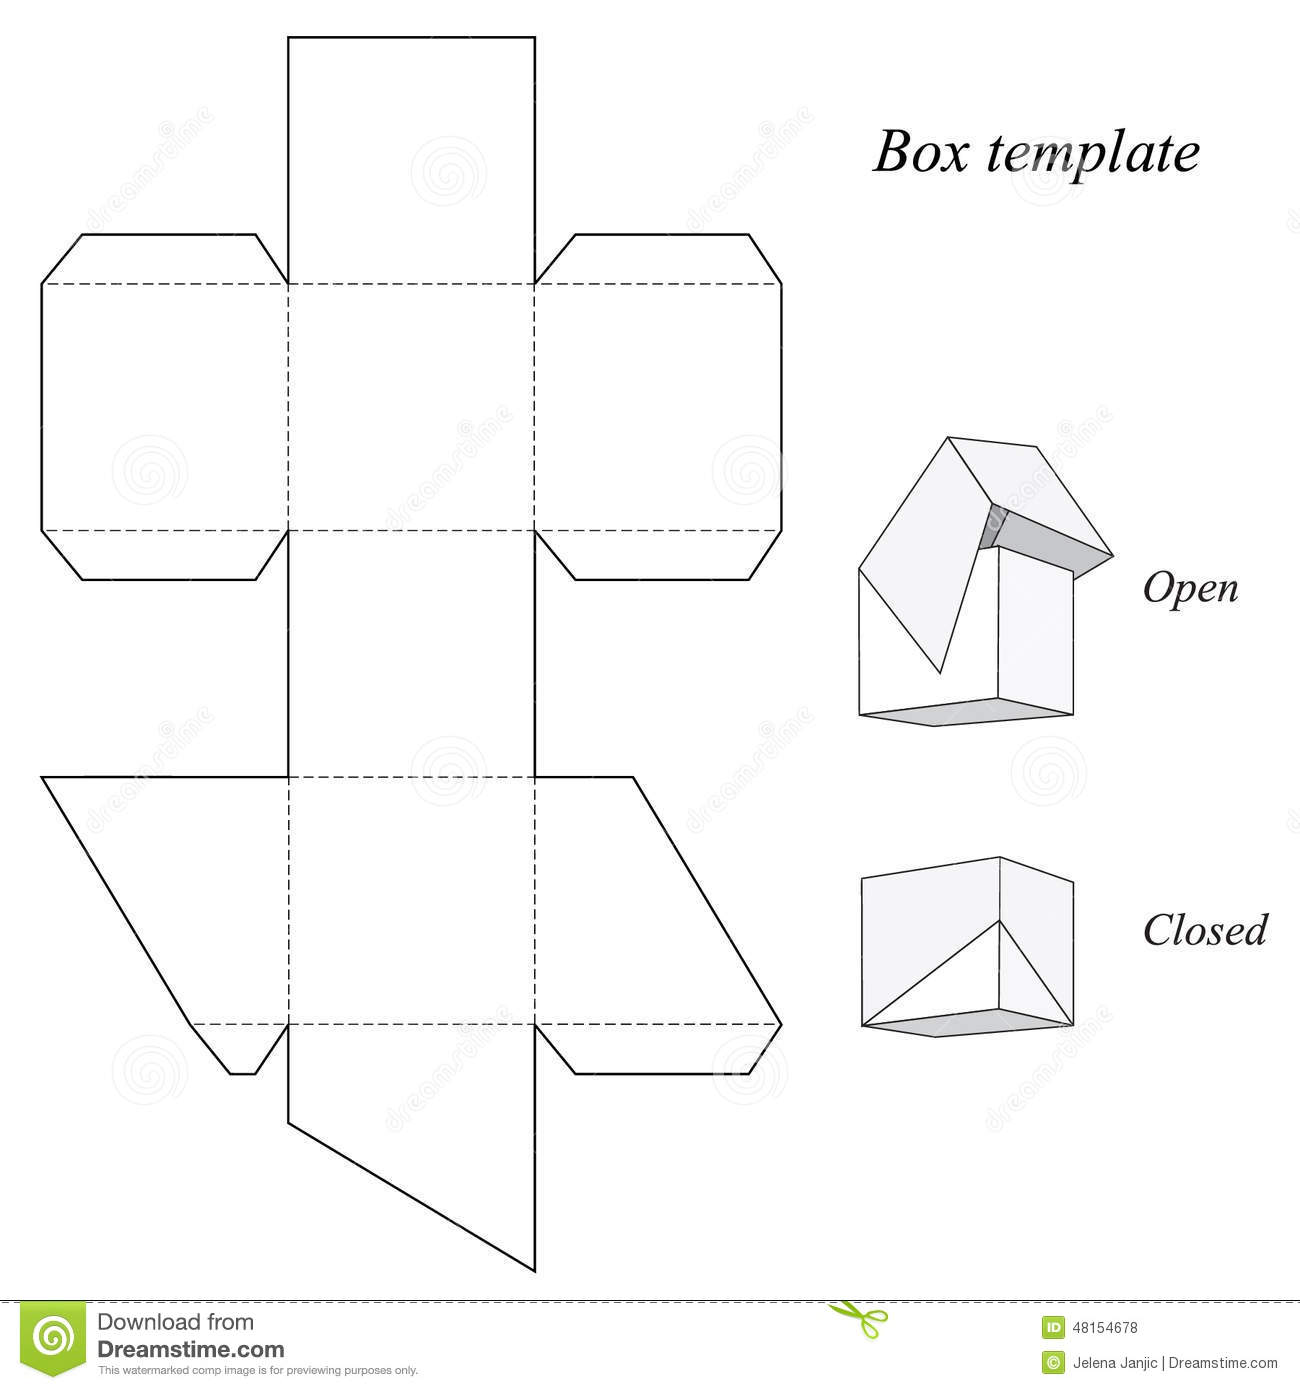 How to Fold a Rectangular Box with a Lid  Pinterest